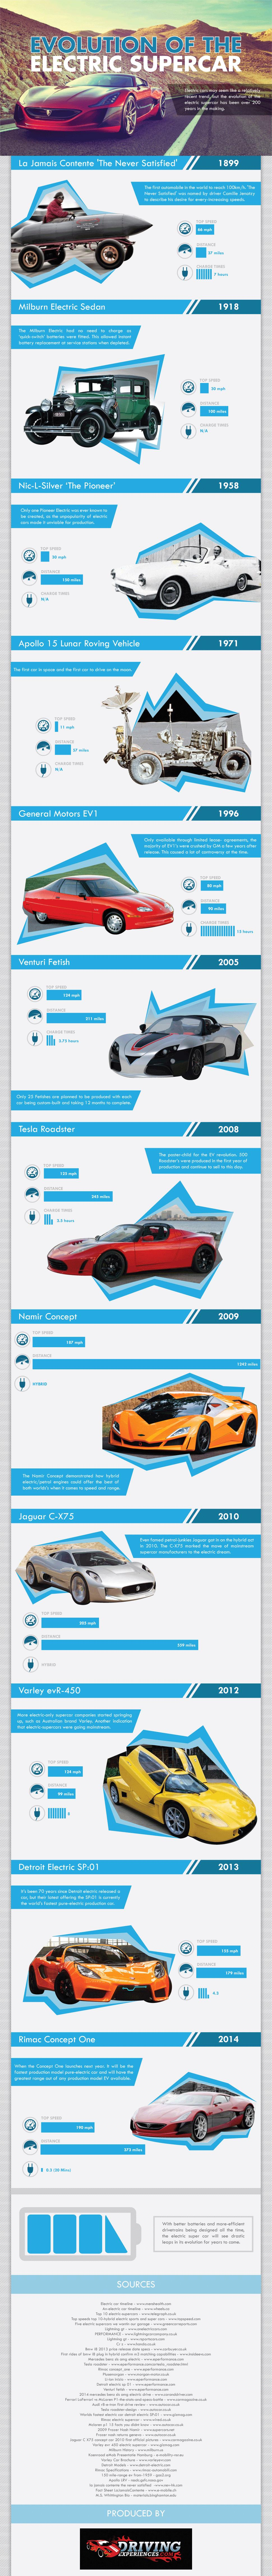 electric-supercars